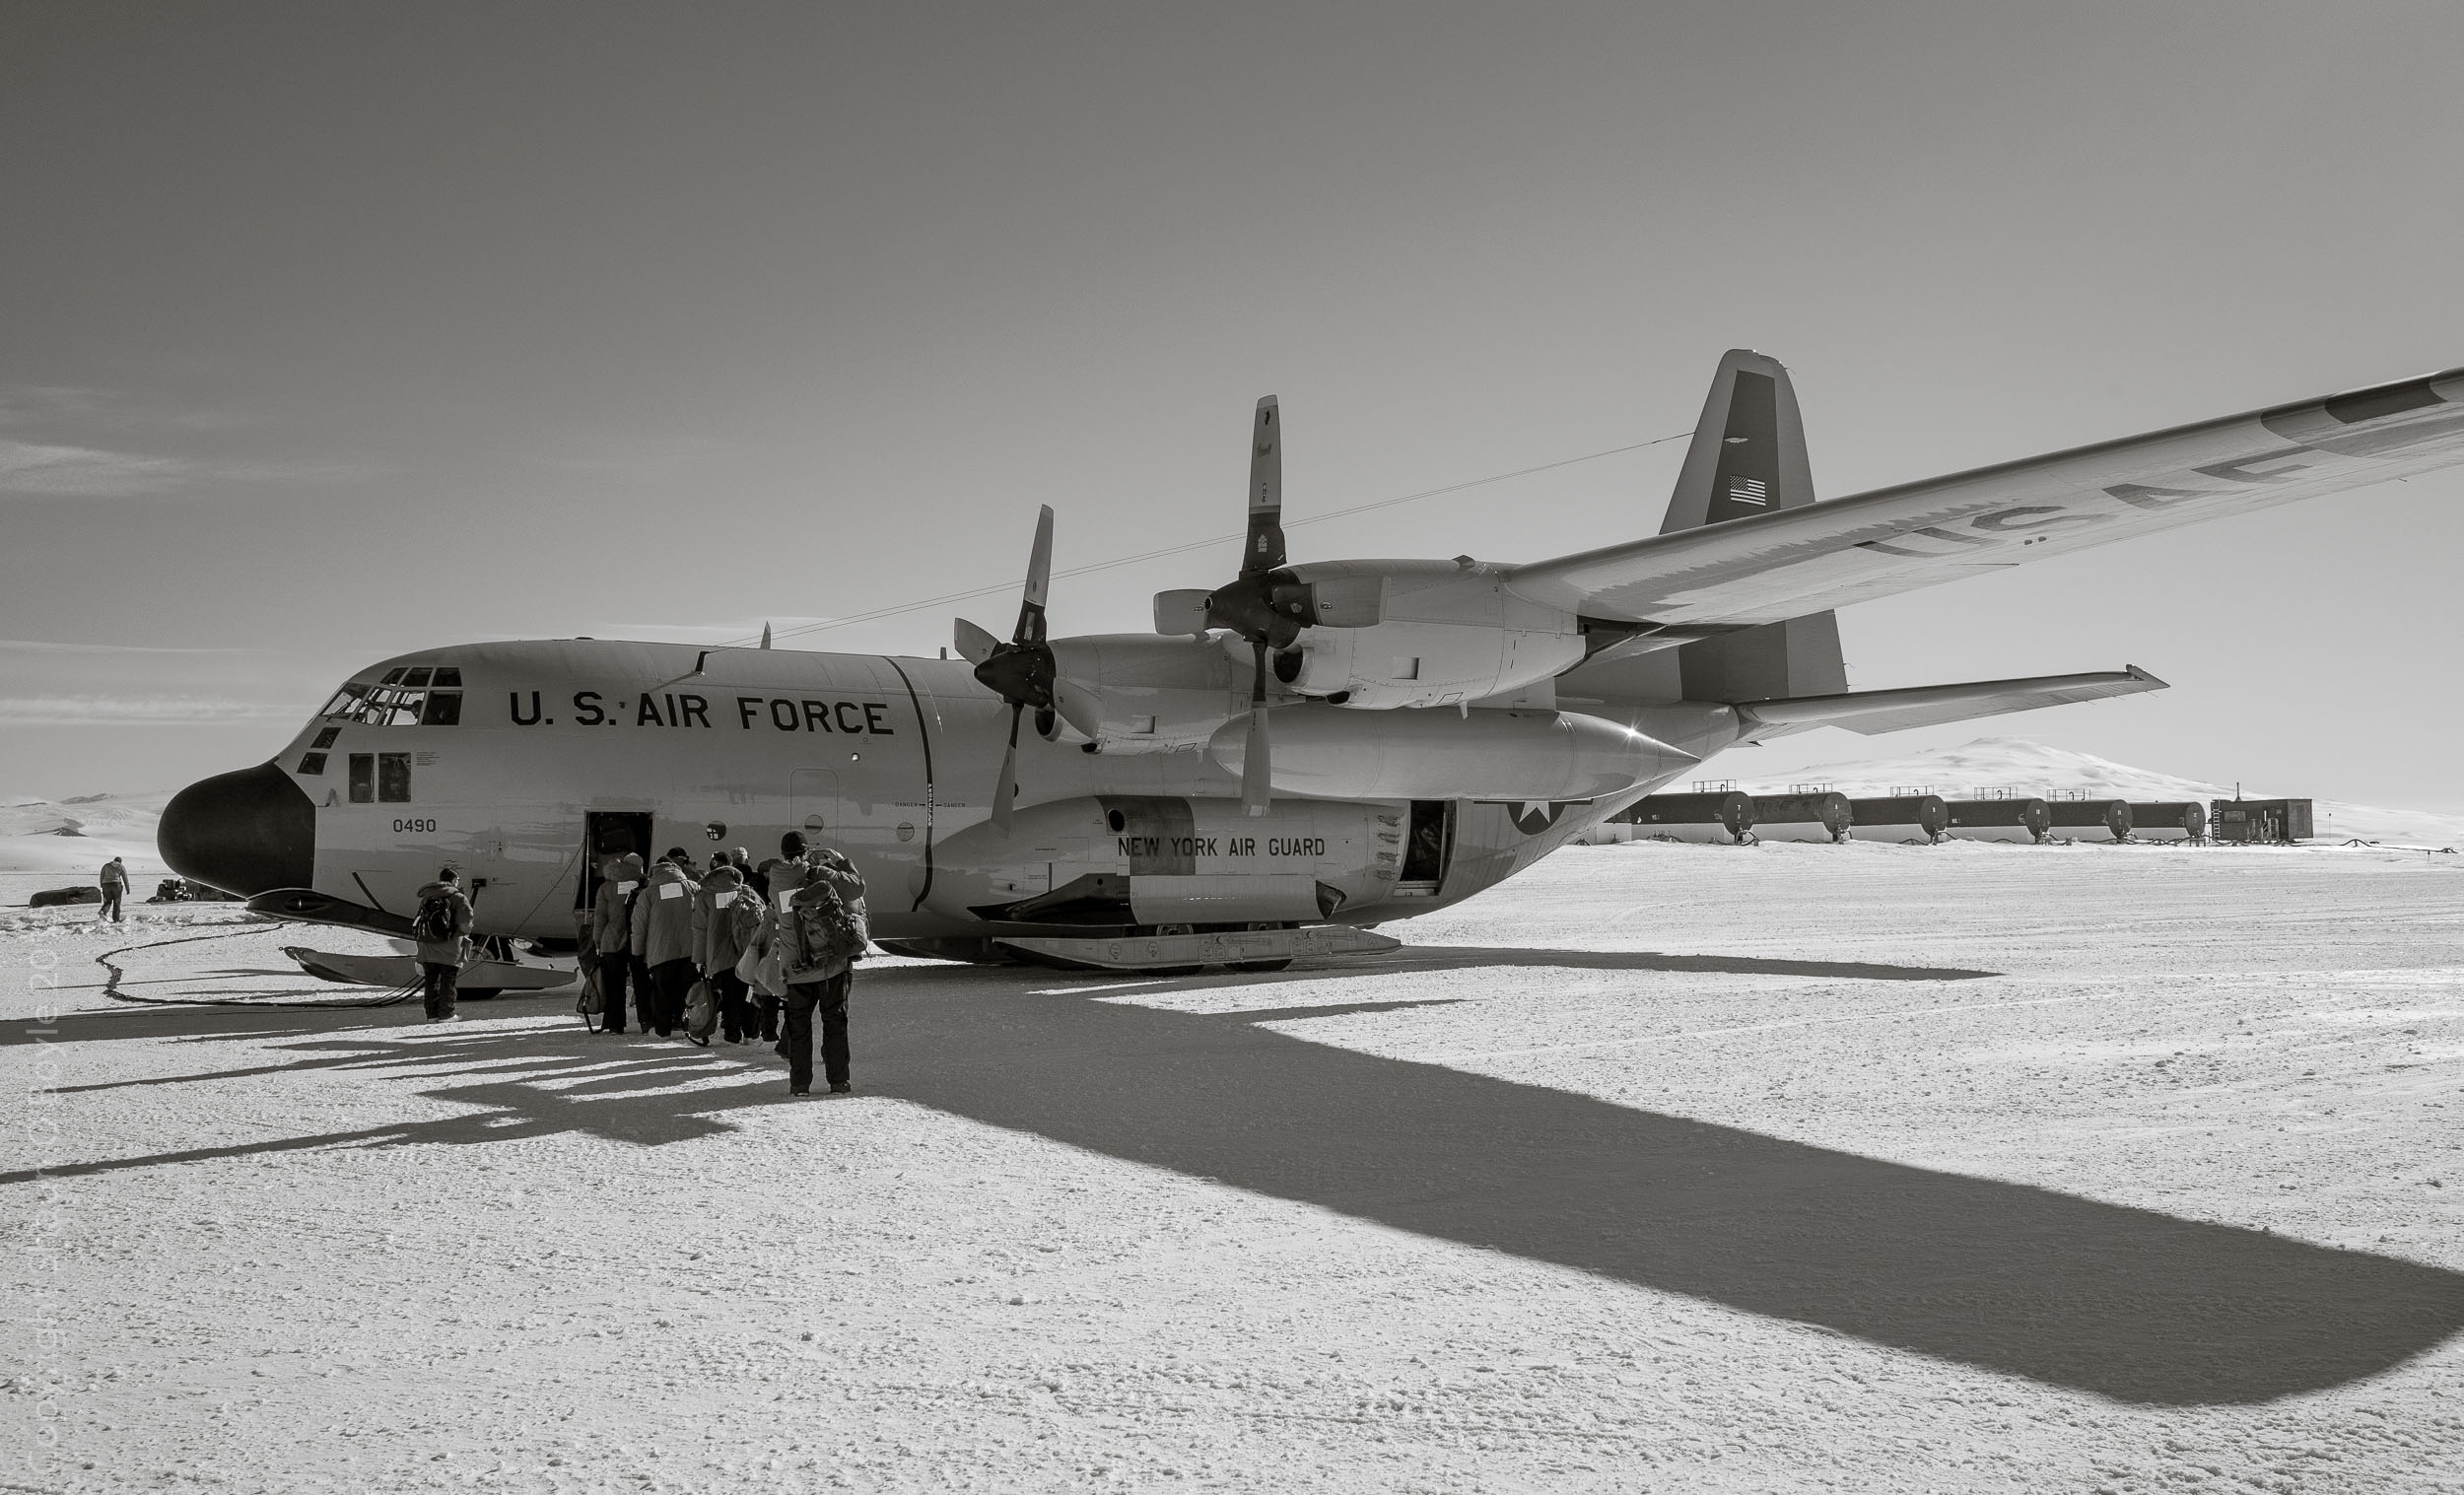 Loading up on the LC-130 for flight to Christchurch, NZ